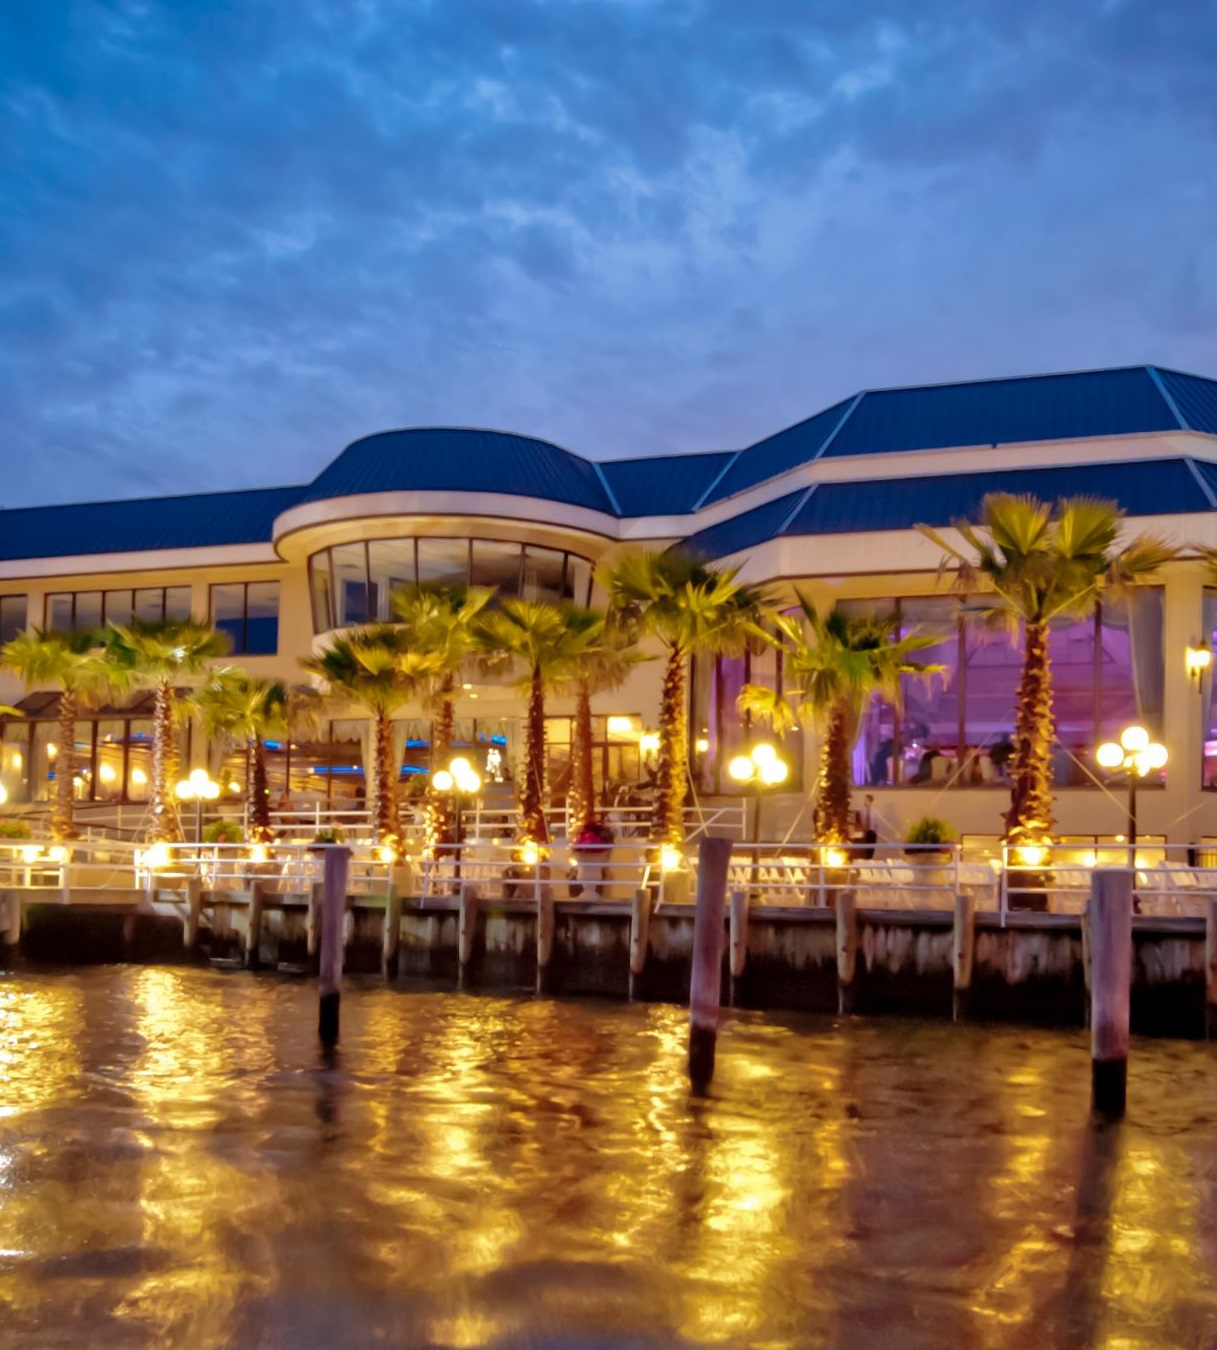 Wedding Halls In Long Island: Long Island Waterfront Catering Hall